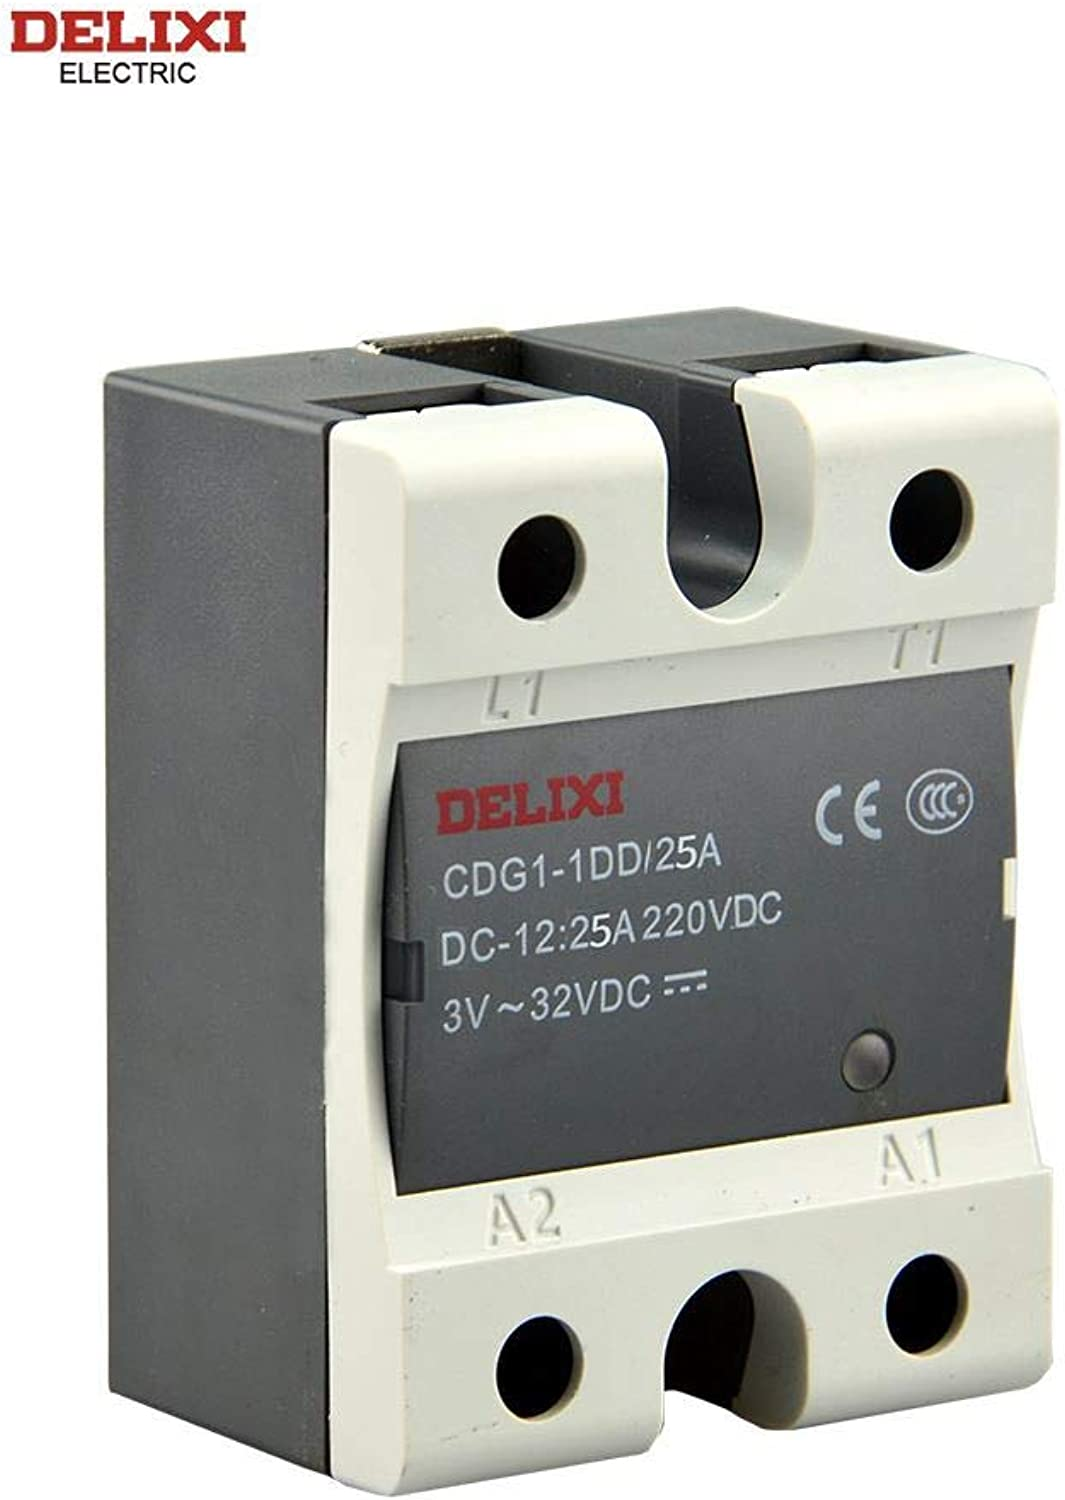 DELIXI Solid State Relay Single Phase CDG11DD 10A 20A 25A 40A 60A 80A 100A DC Control DC  (color  60A)